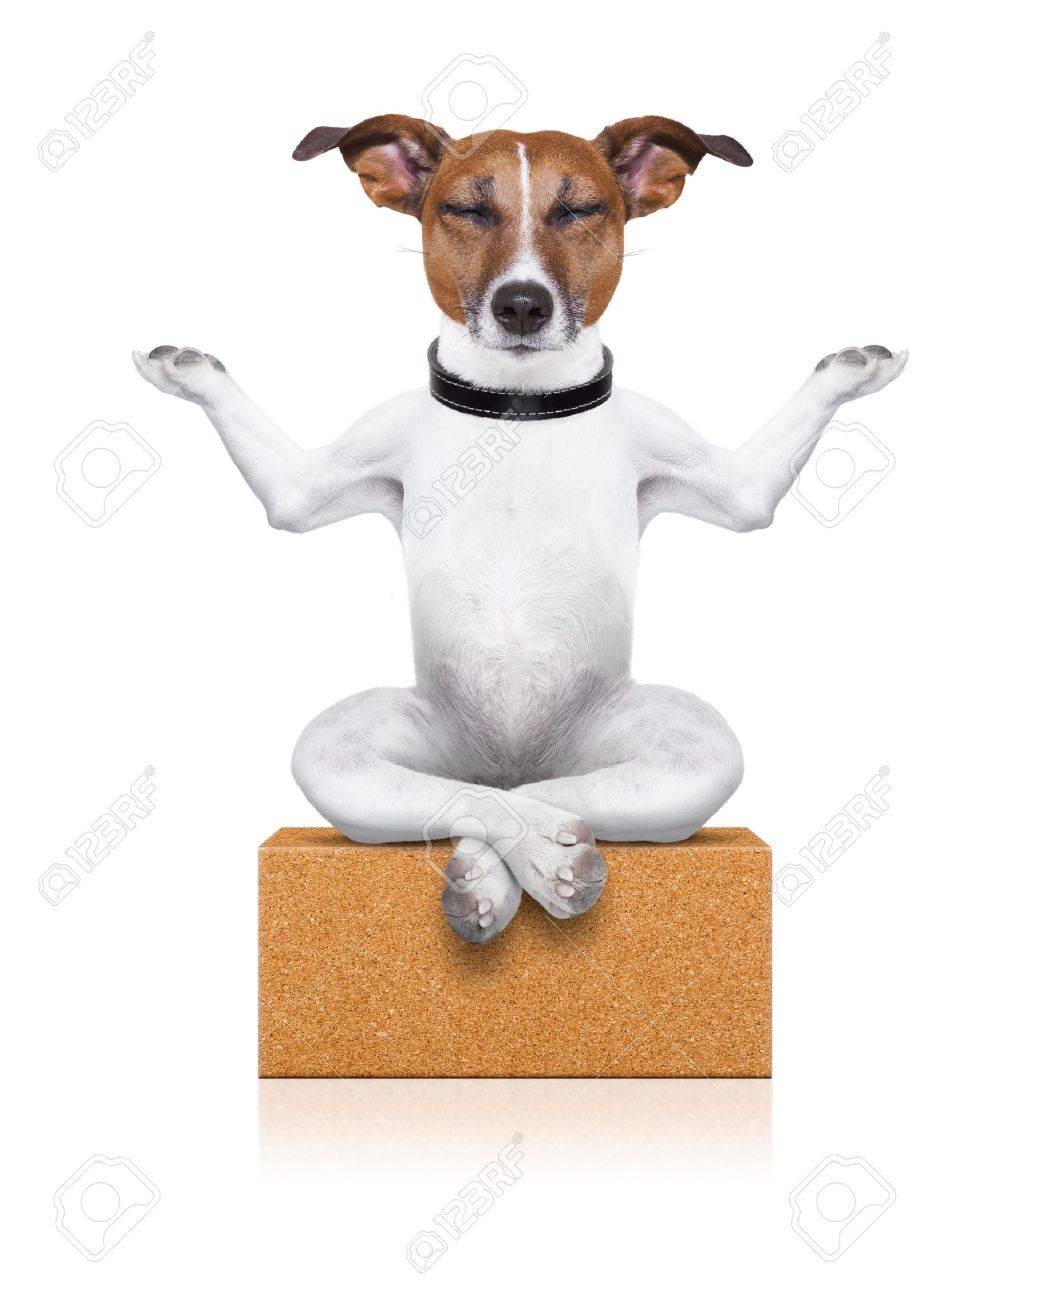 yoga dog sitting relaxed with closed eyes thinking deeply on a brick Stock Photo - 21377308